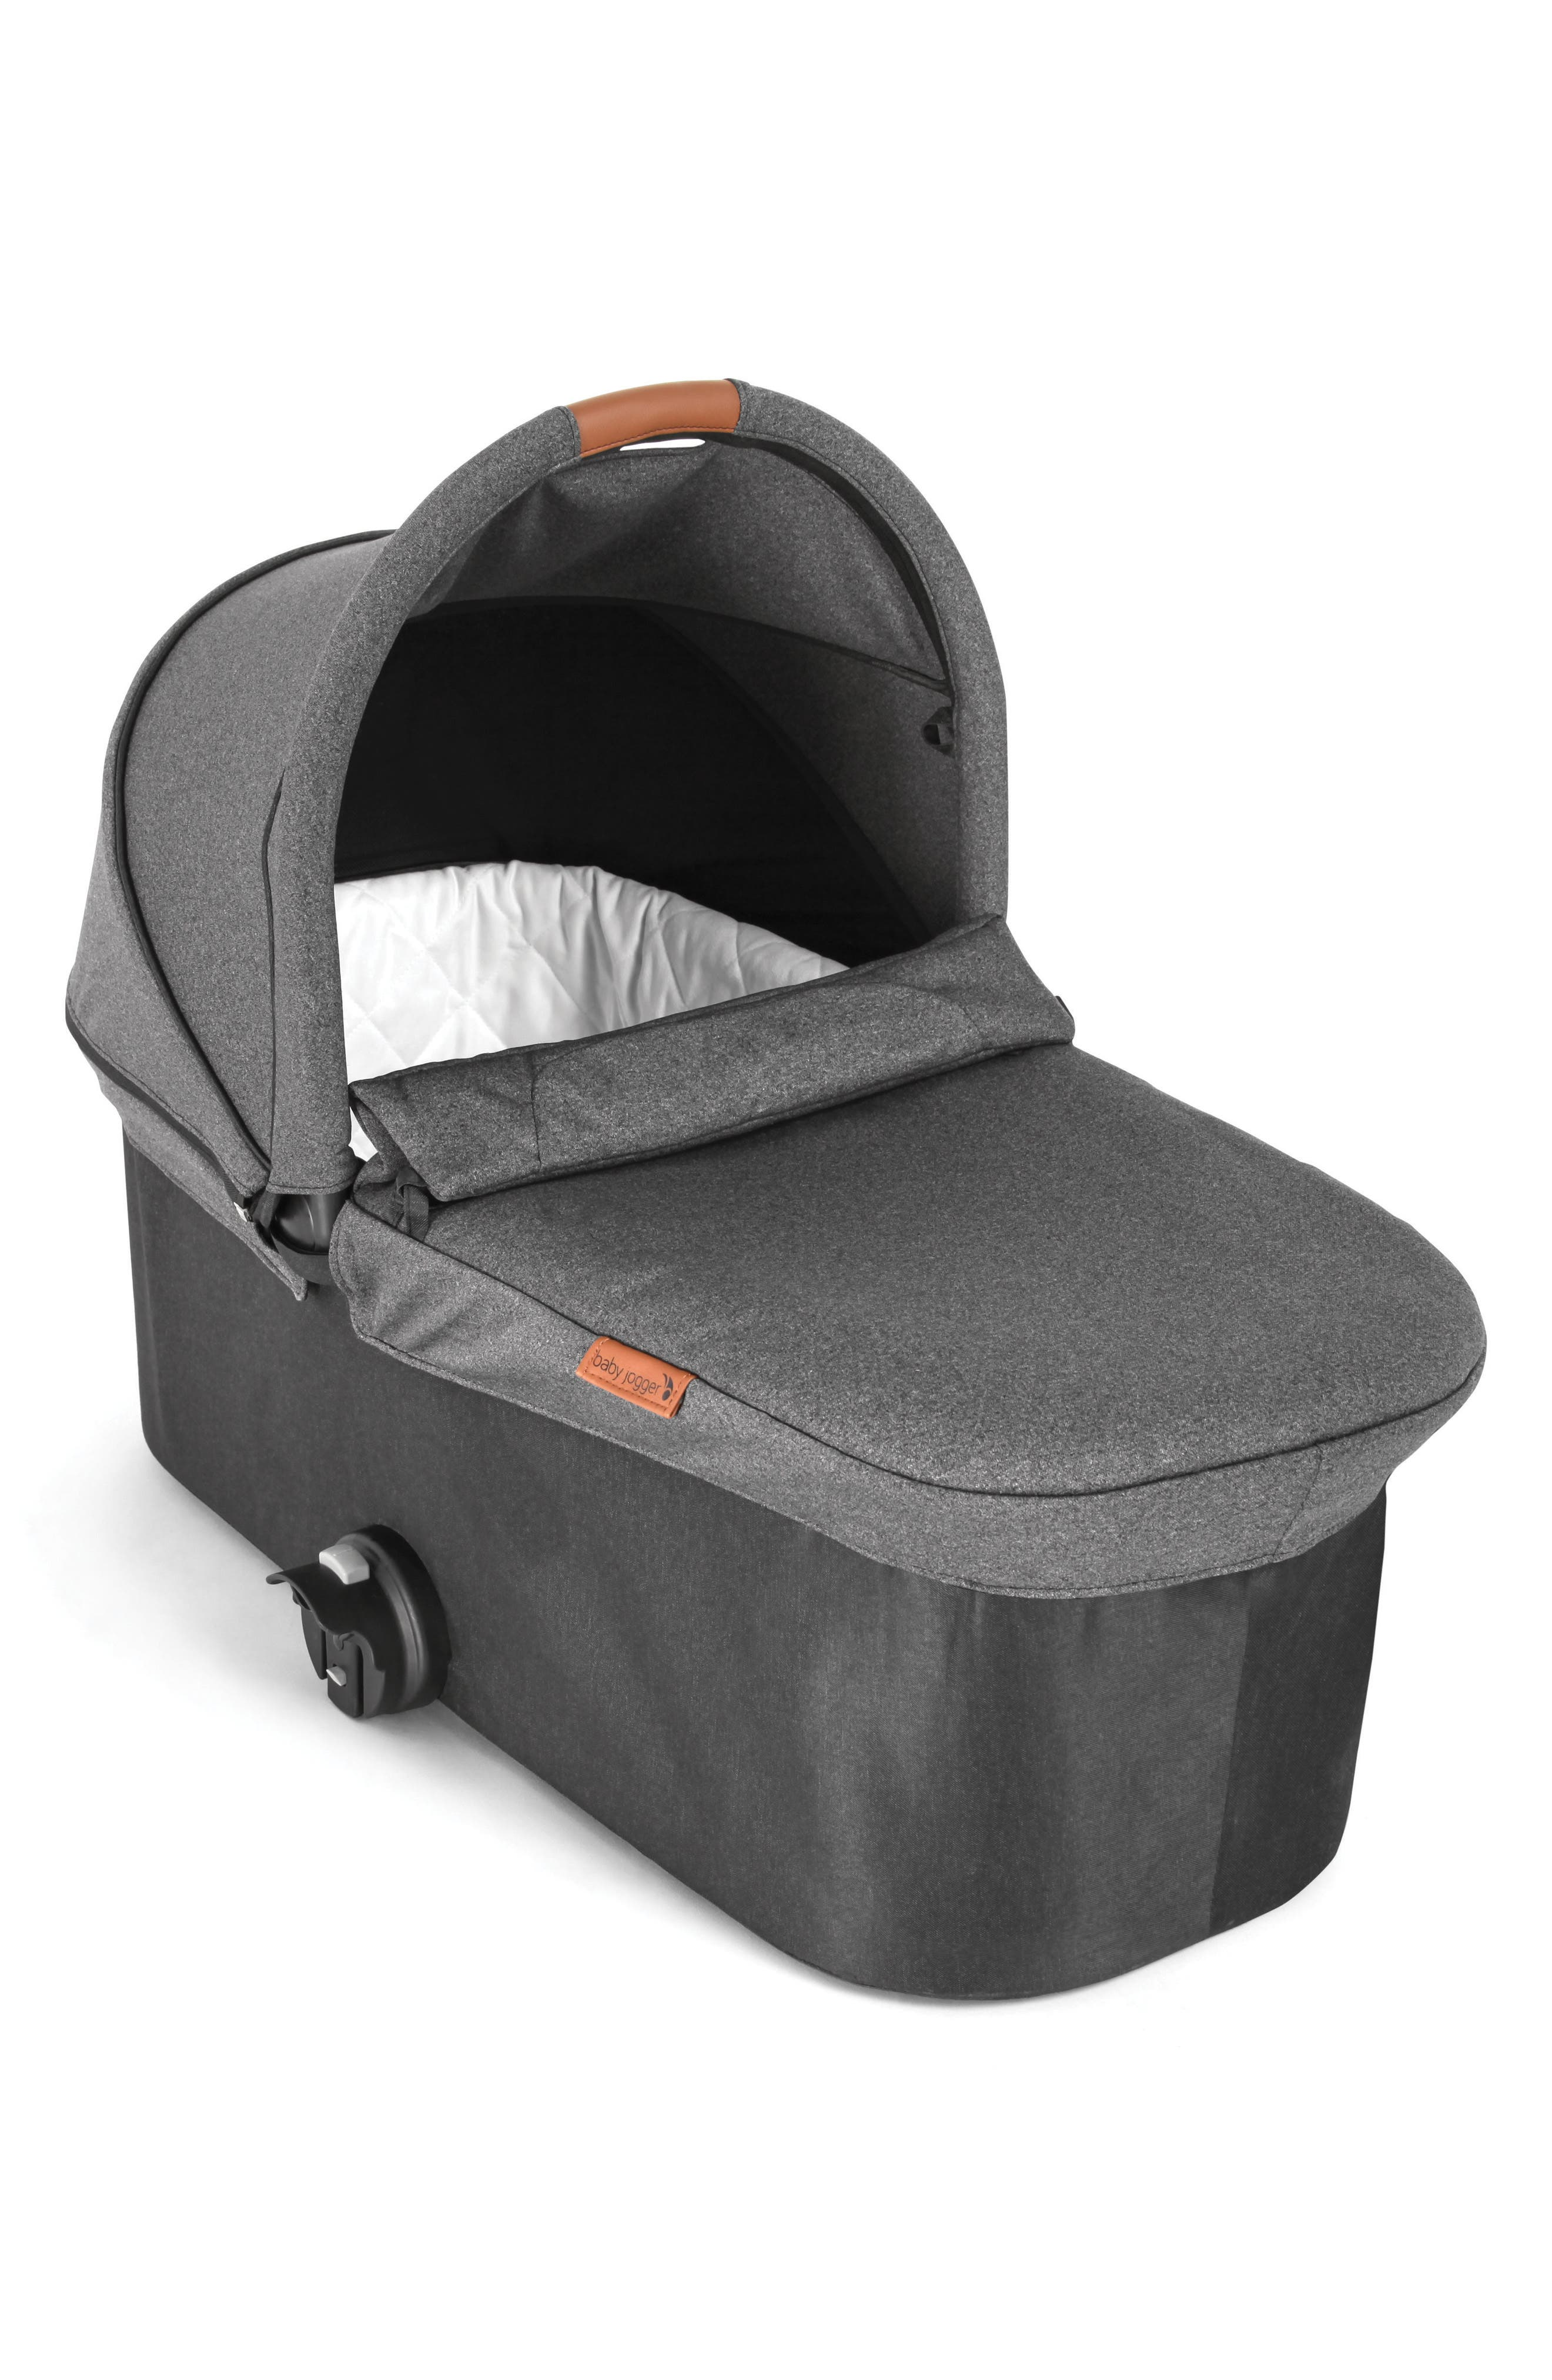 Deluxe Pram Converter Kit for City Mini<sup>®</sup> 2018 Special Edition 10-Year Anniversary All-Terrain Stroller,                         Main,                         color, Grey